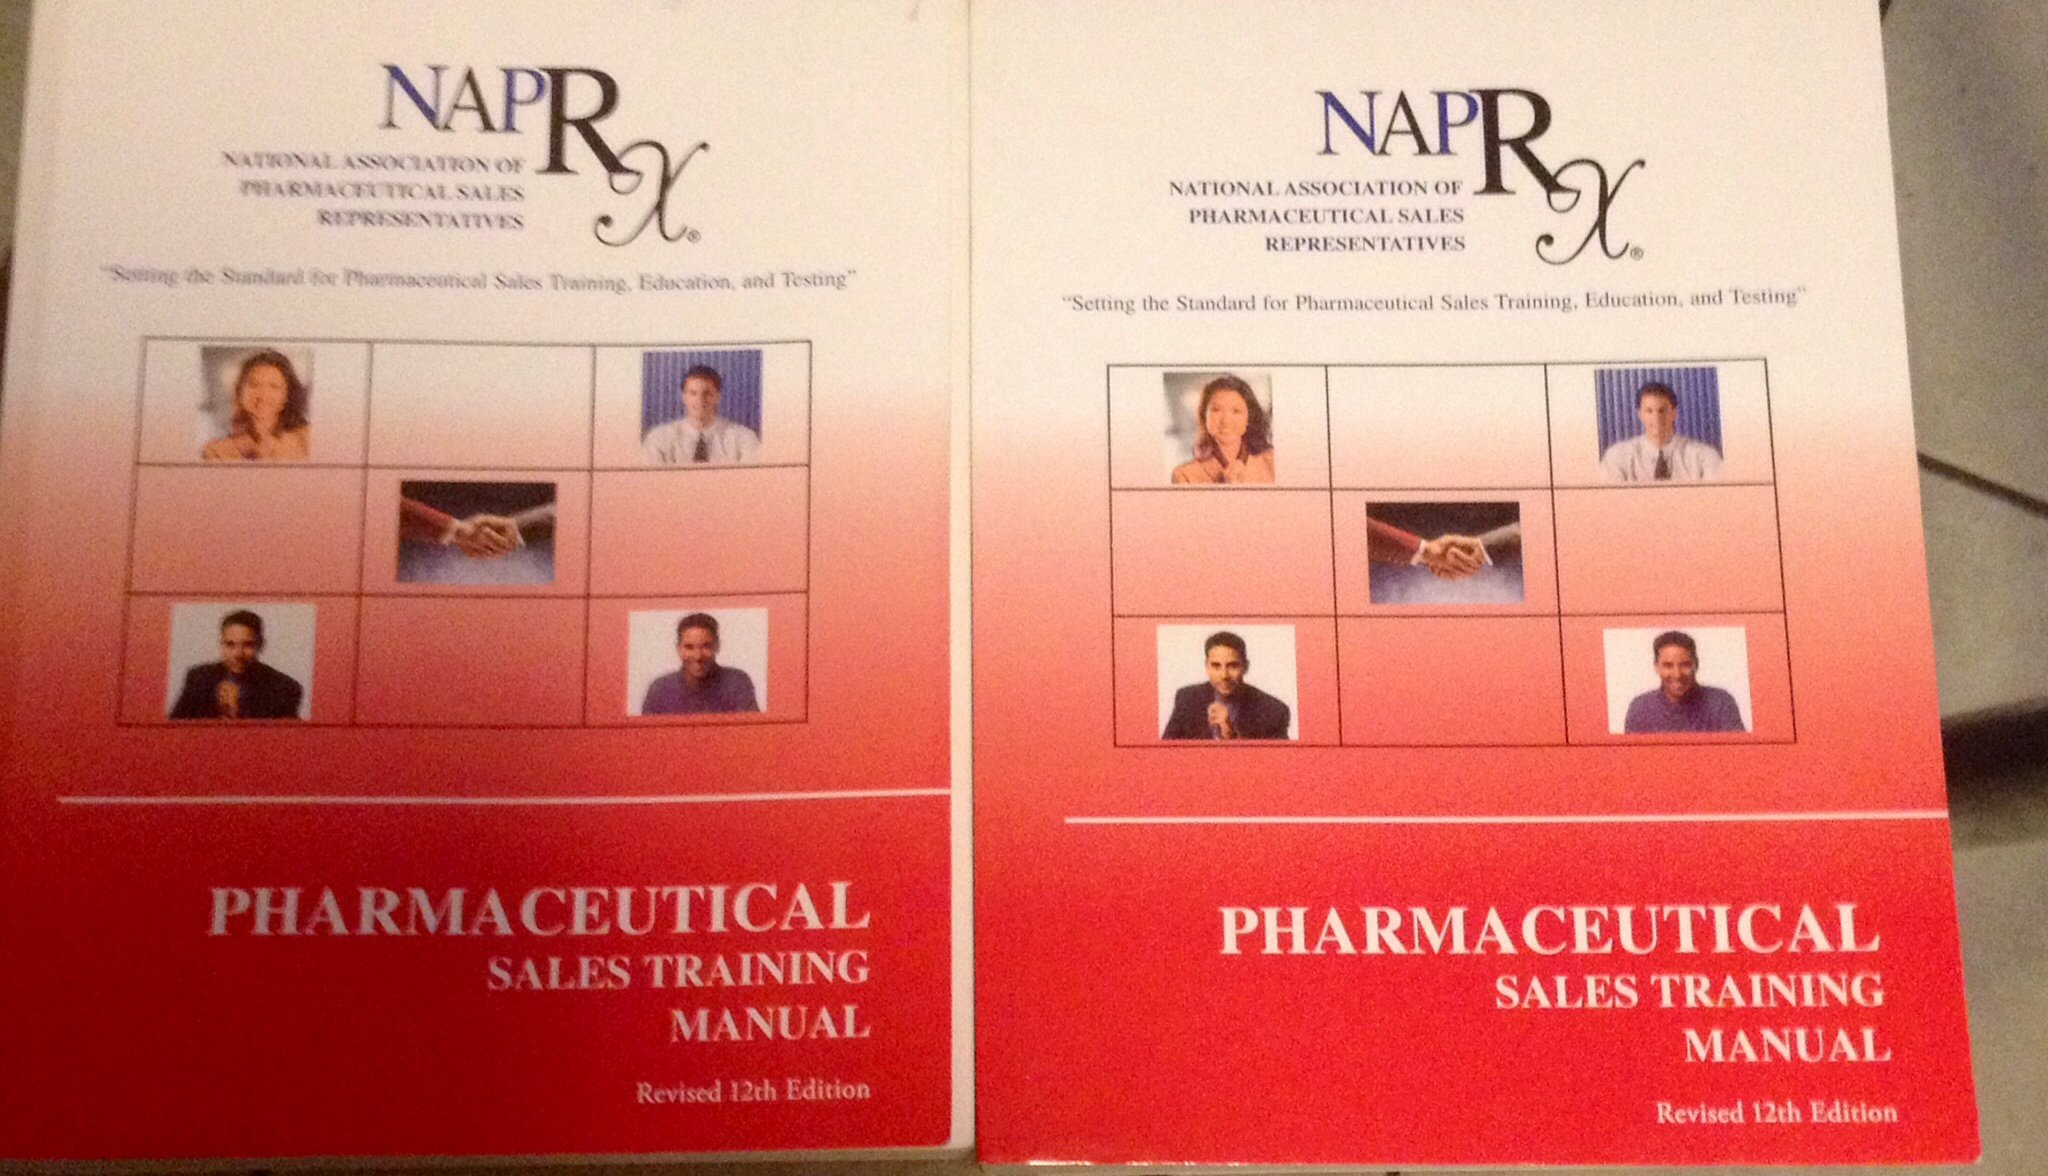 Pharmaceutical sales training manual napsrx napsrx amazon books fandeluxe